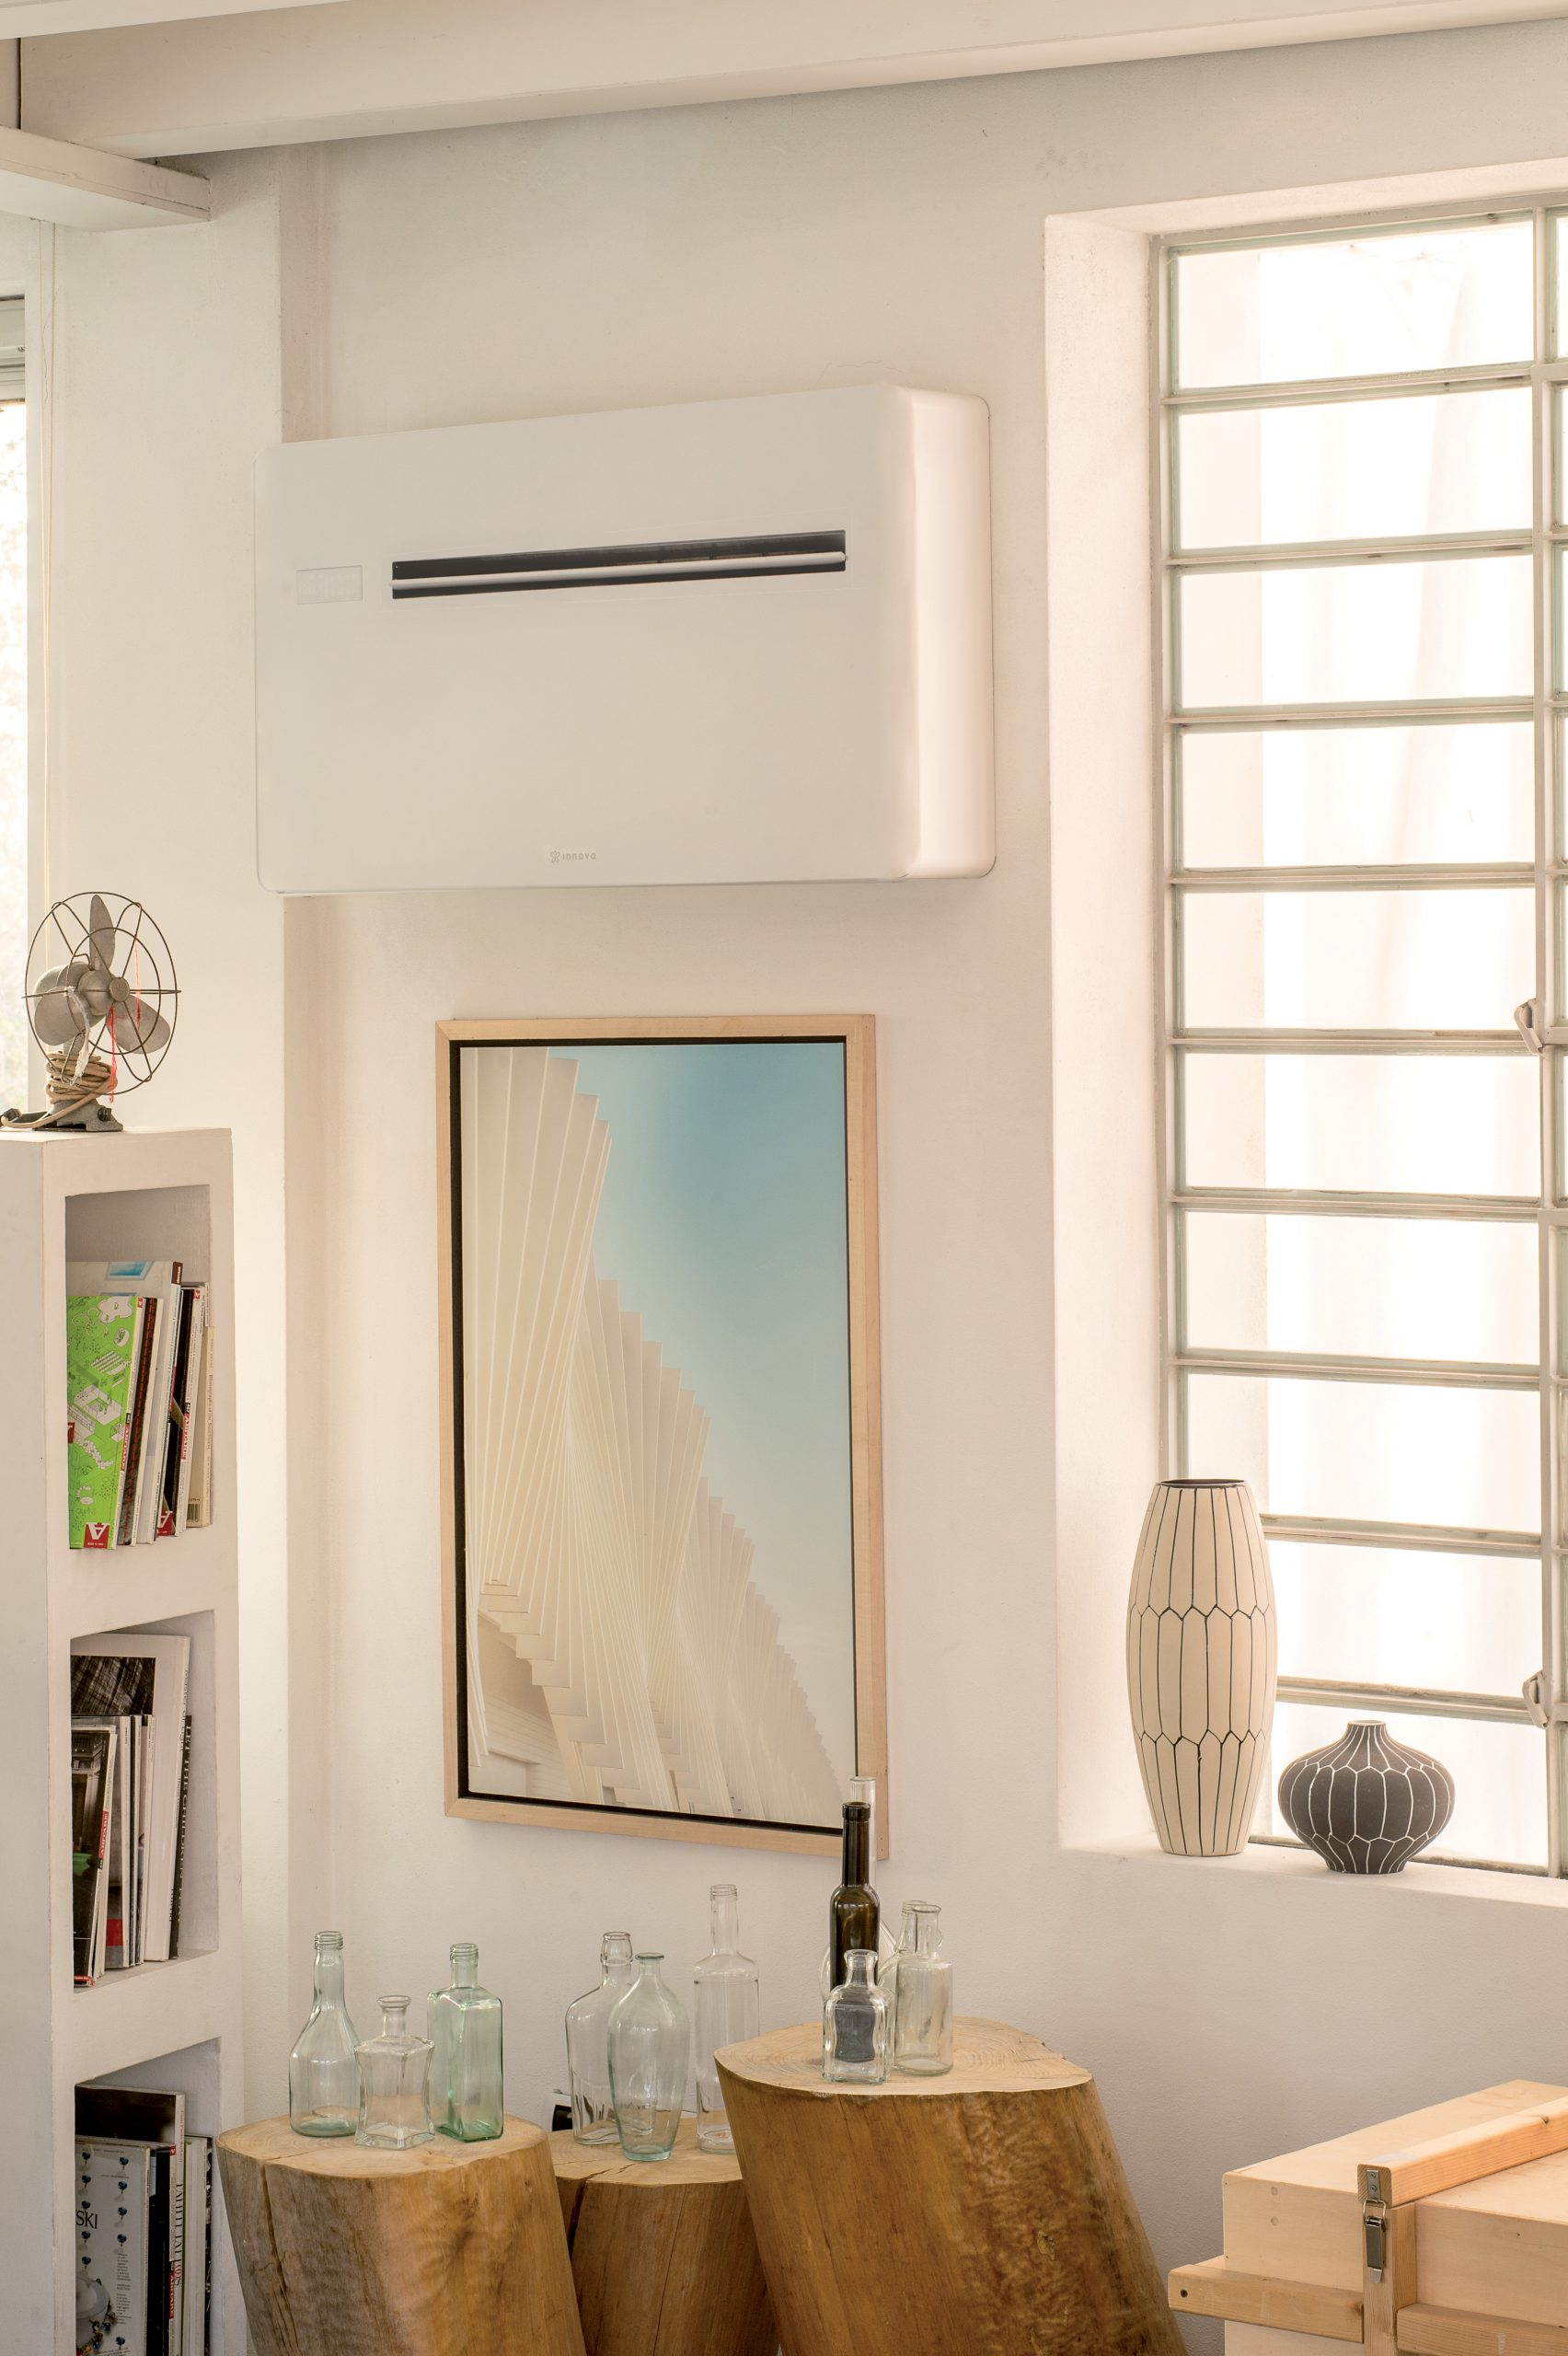 airco voor thuis